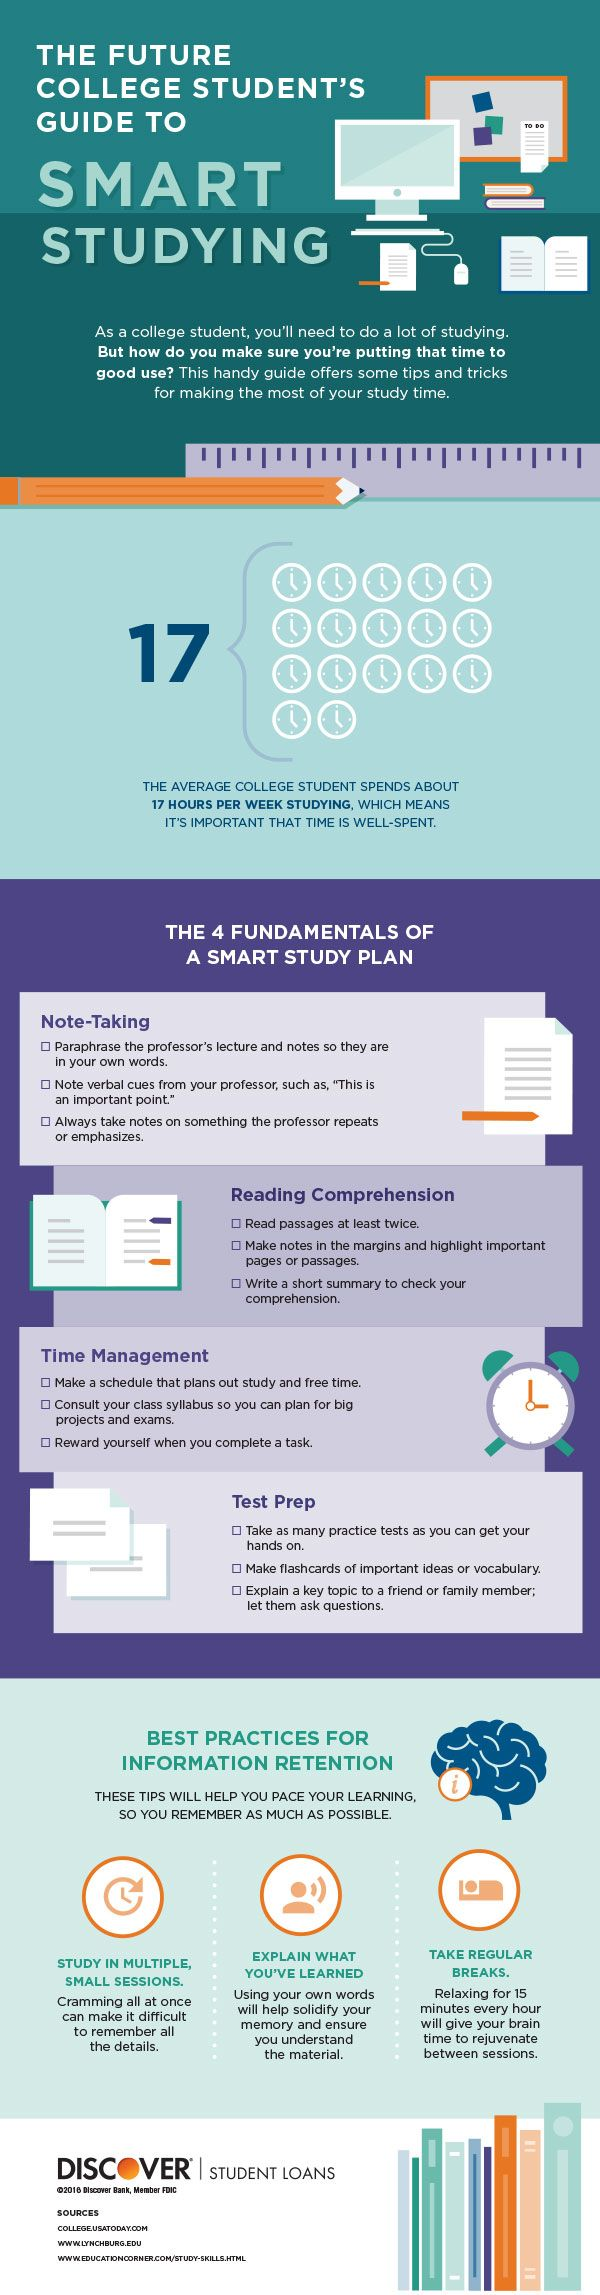 Smart Studying Guide for College Infographic - http://elearninginfographics.com/smart-studying-guide-college-infographic/